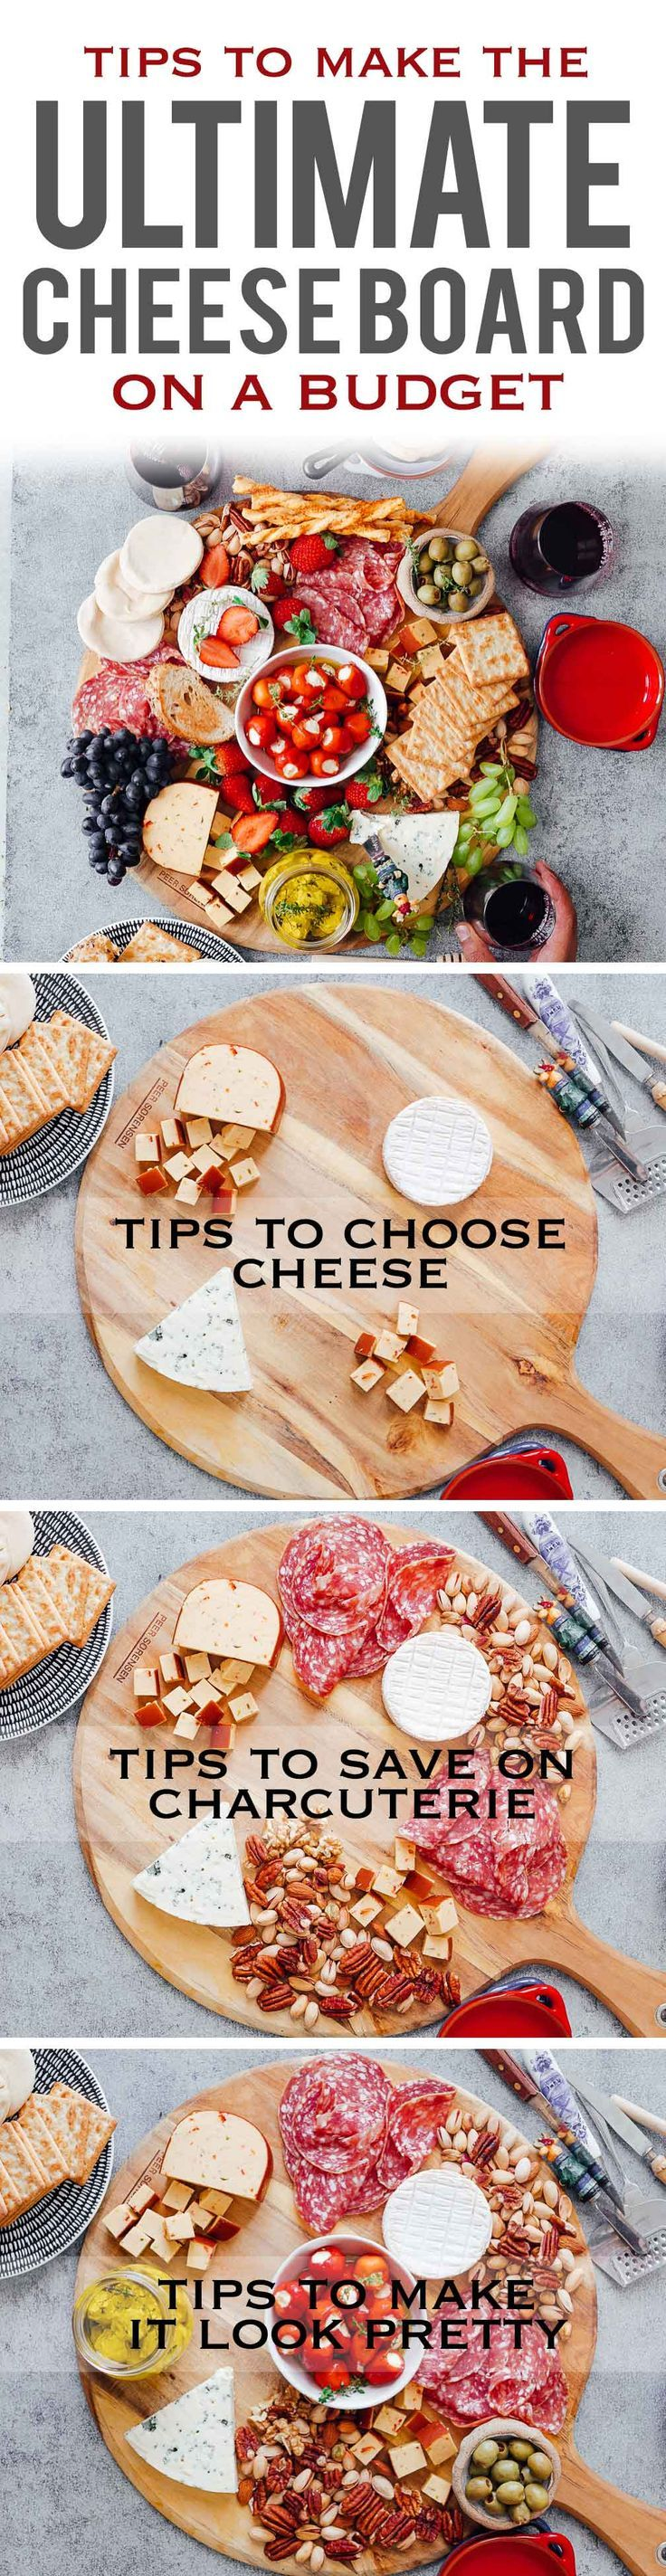 Learn how to make the Ultimate Wine and Cheese Board on a budget with simple tips and tricks. You'll be a DIY cheeseboard ninja by the end of this detailed post. This easy cheese platter is perfect for Christmas holidays, as a party appetizer for a crowd or for a romantic dinner date. Also detailed instructions for wine and cheese pairing via @my_foodstory